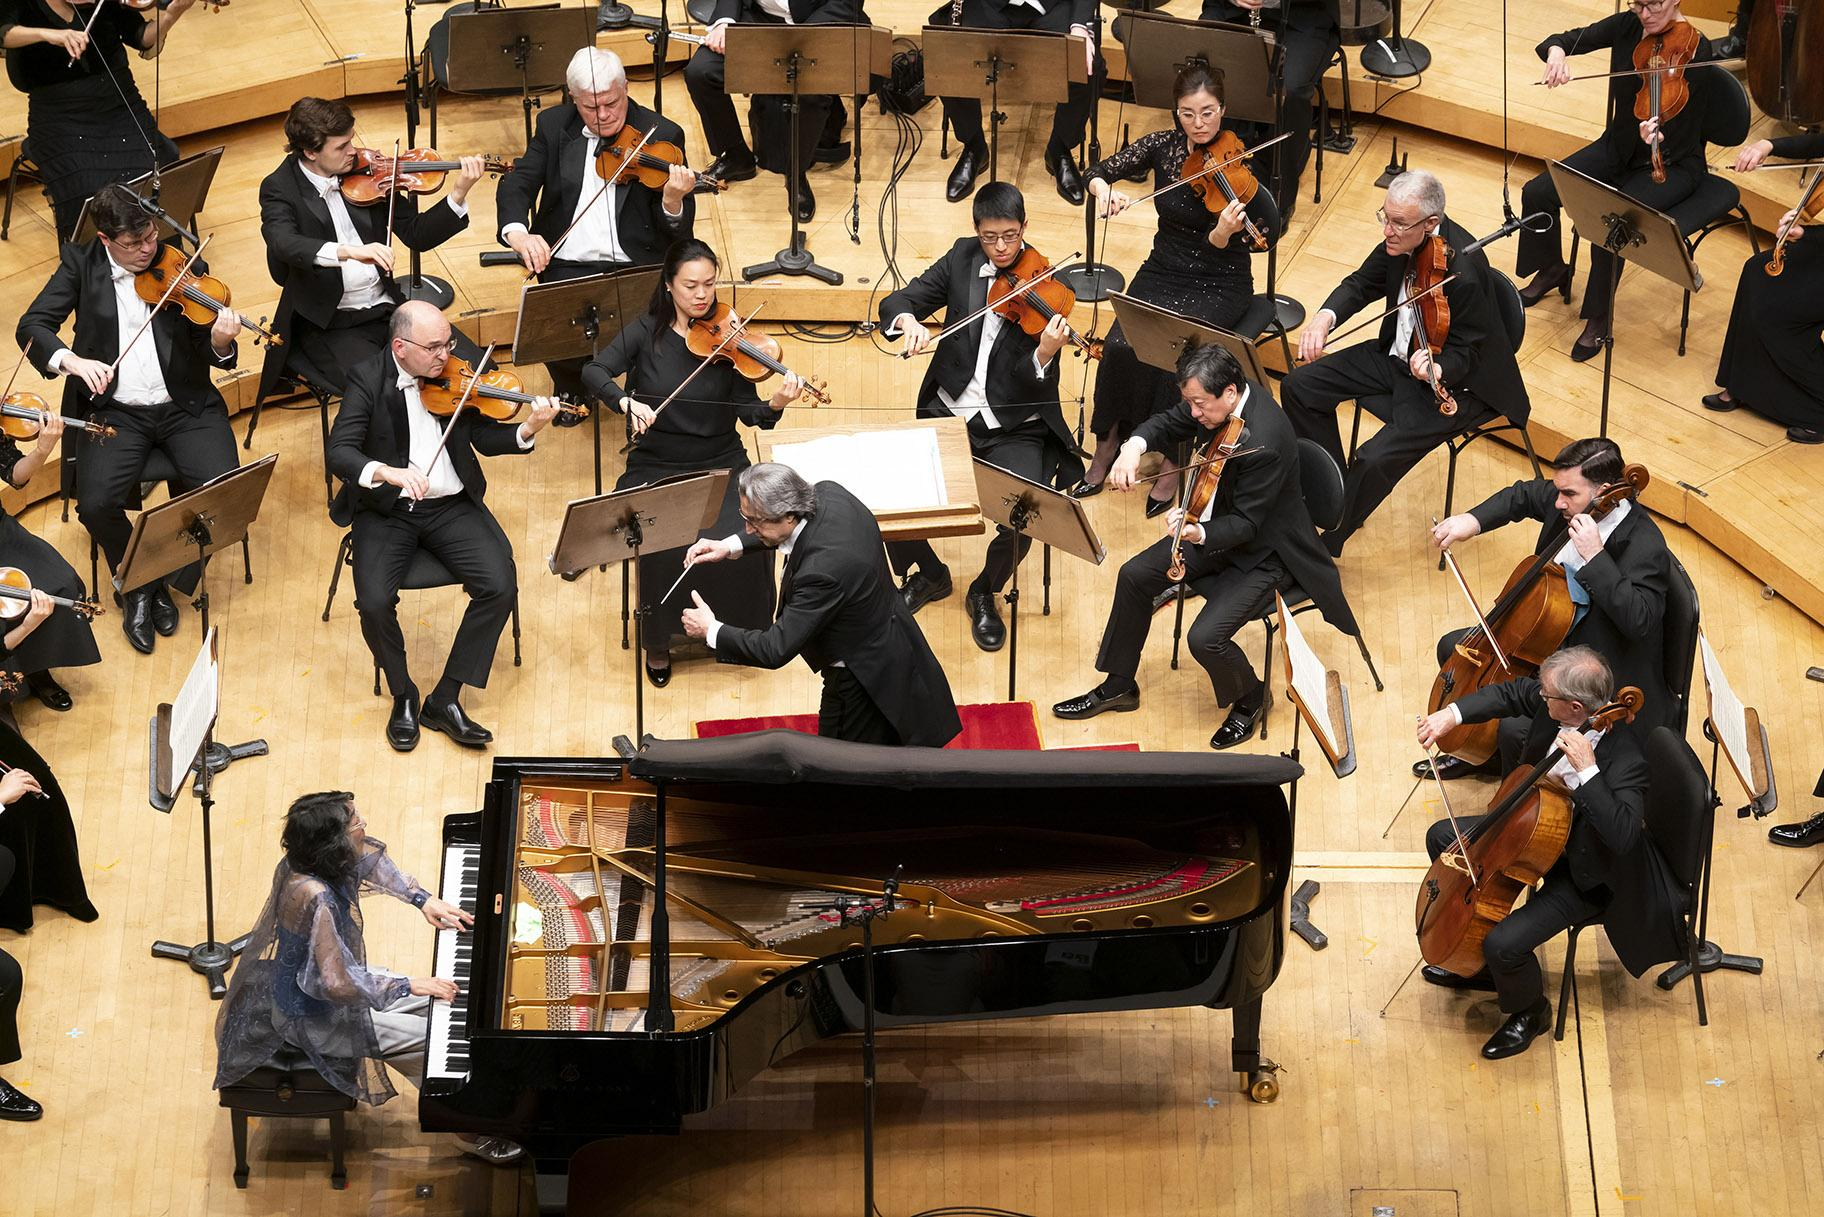 Zell Music Director Riccardo Muti leads the CSO in a performance of Mozart's Piano Concerto No. 20 with Mitsuko Uchida as soloist. (Photo credit: Todd Rosenberg)